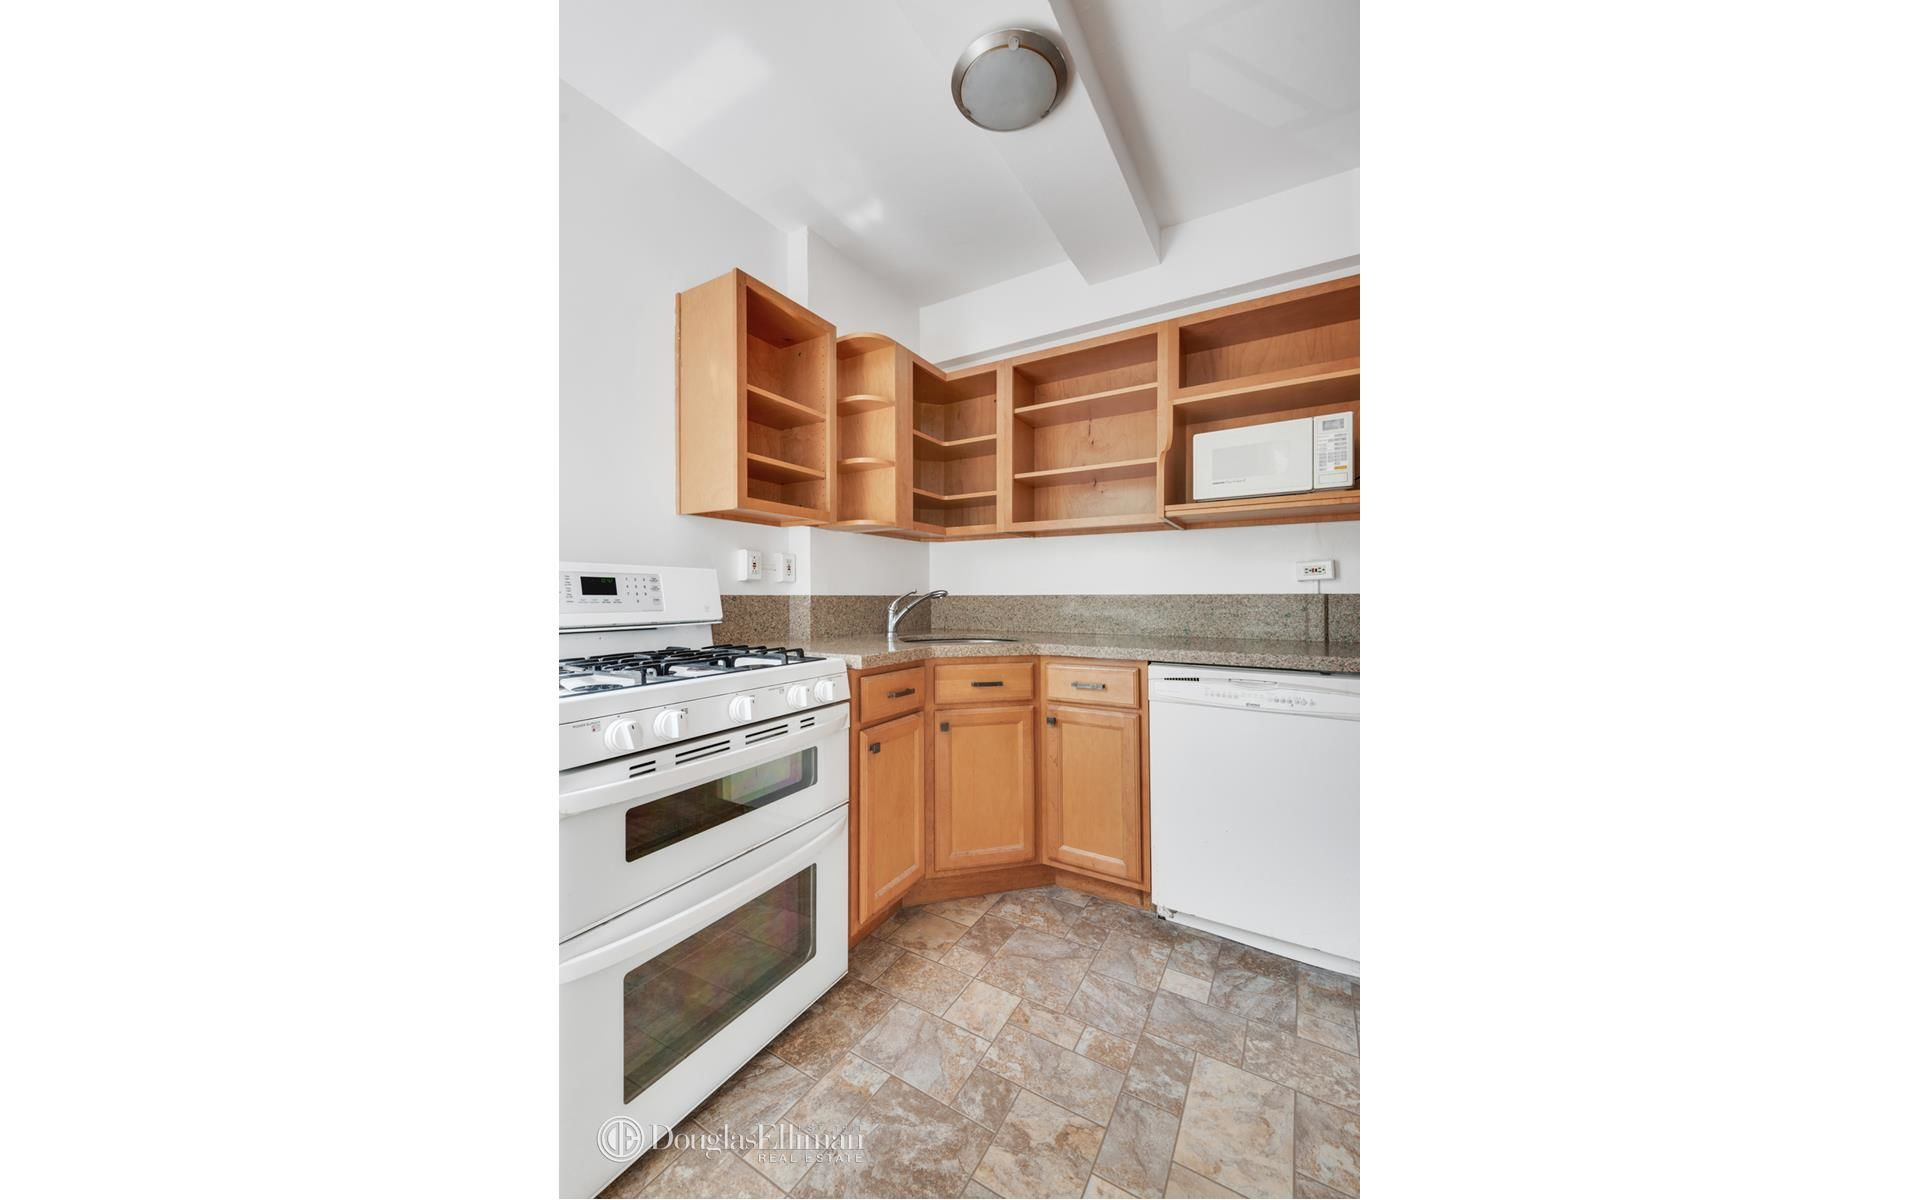 130 8th Ave, APT 2A Photo 9 - ELLIMAN-3787631